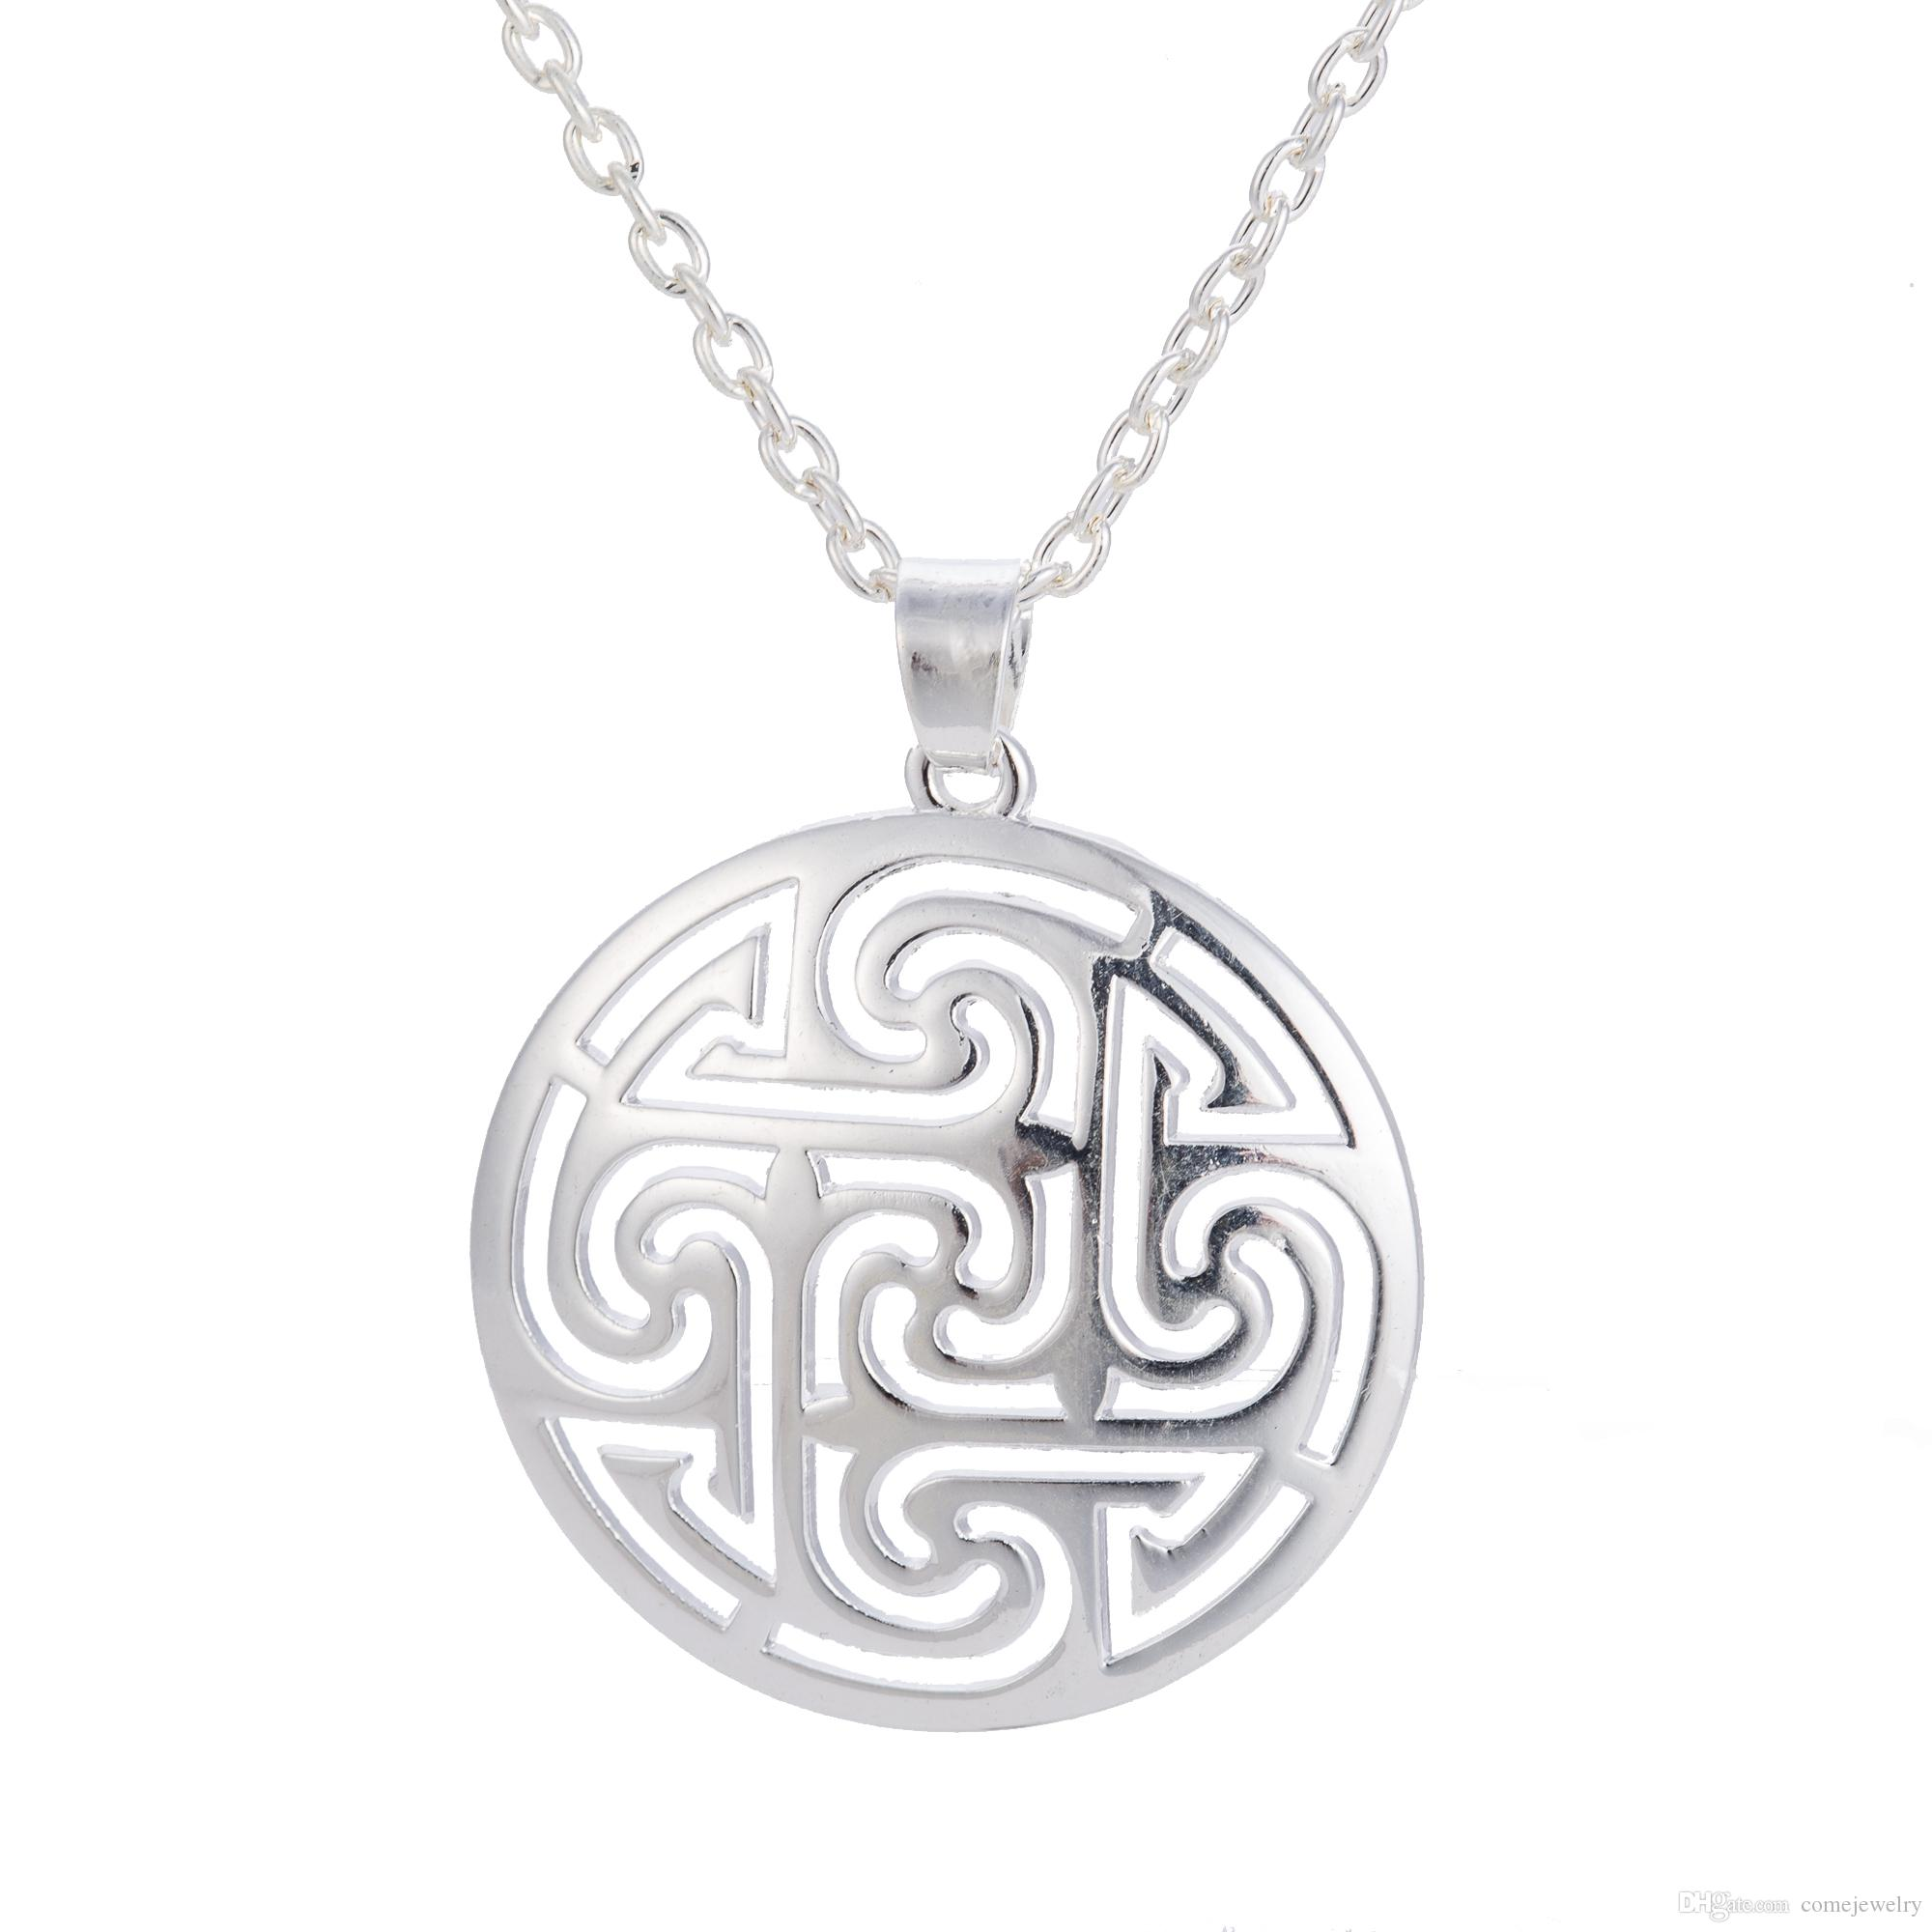 for sterling chains celtic lockets jewelry male view in pmr style silver cut pendant all large men necklace design cross bling pendants mens every necklaces out inch